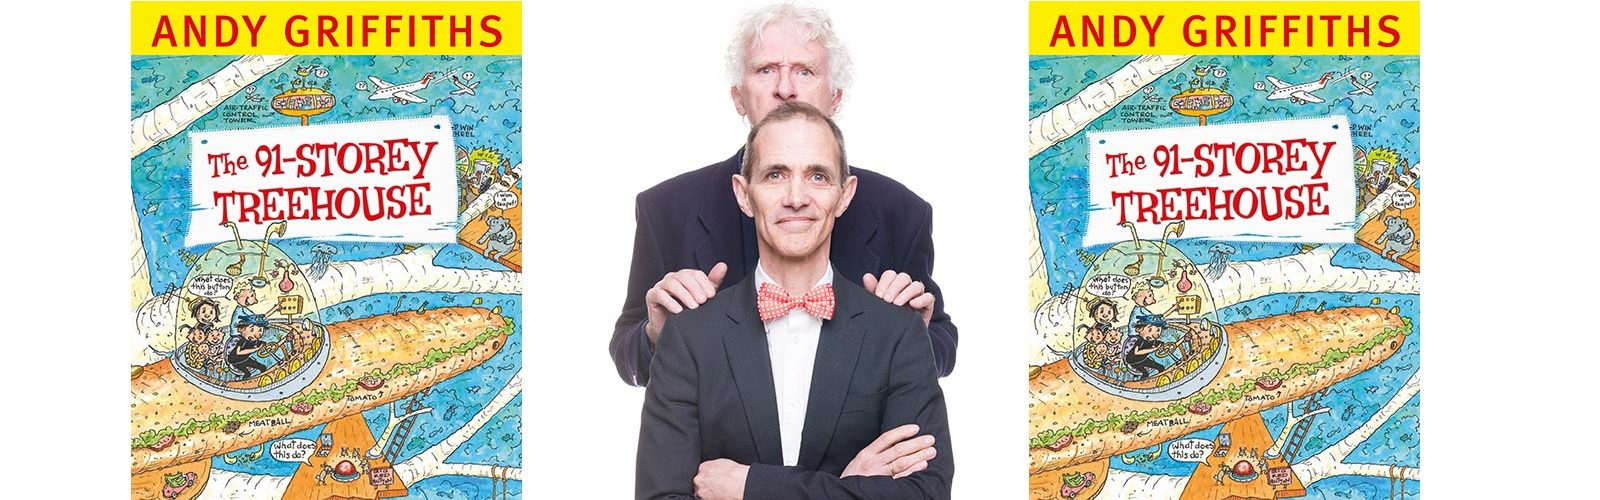 Andy Griffiths, front, and Terry Denton with The 91-Storey Treehouse book cover. Photo: supplied